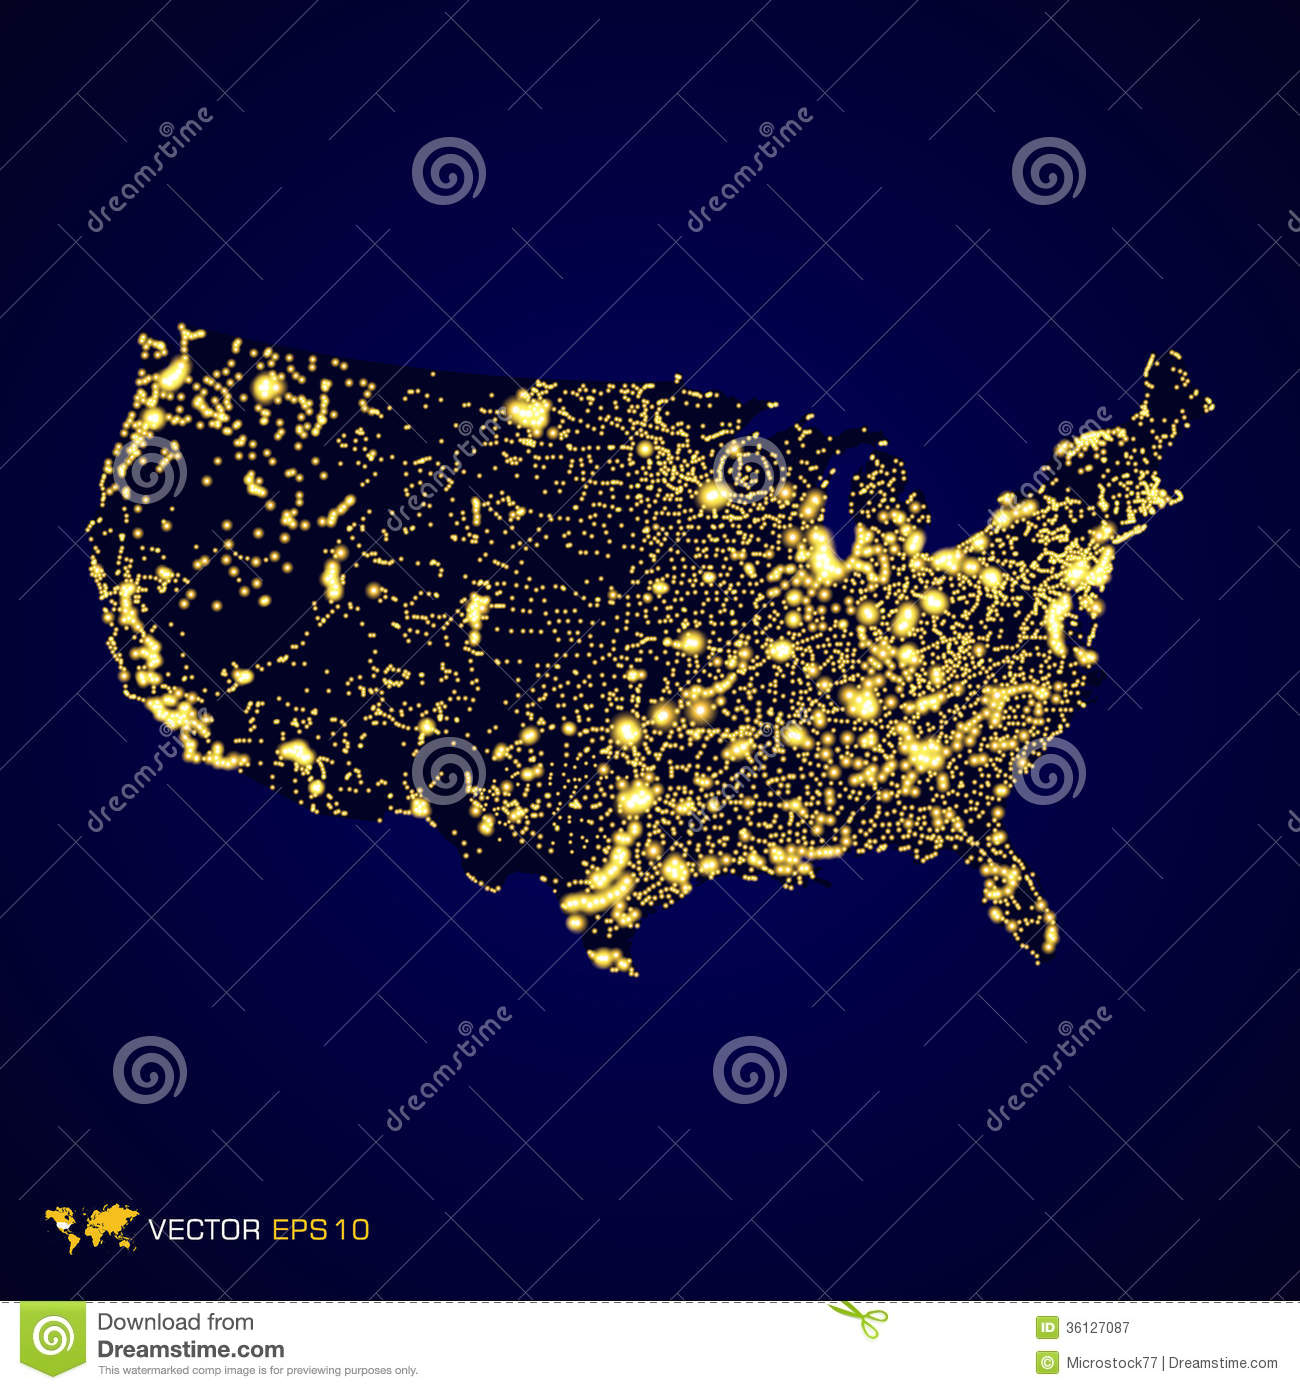 usa map night royalty free stock photography - image: 36127087